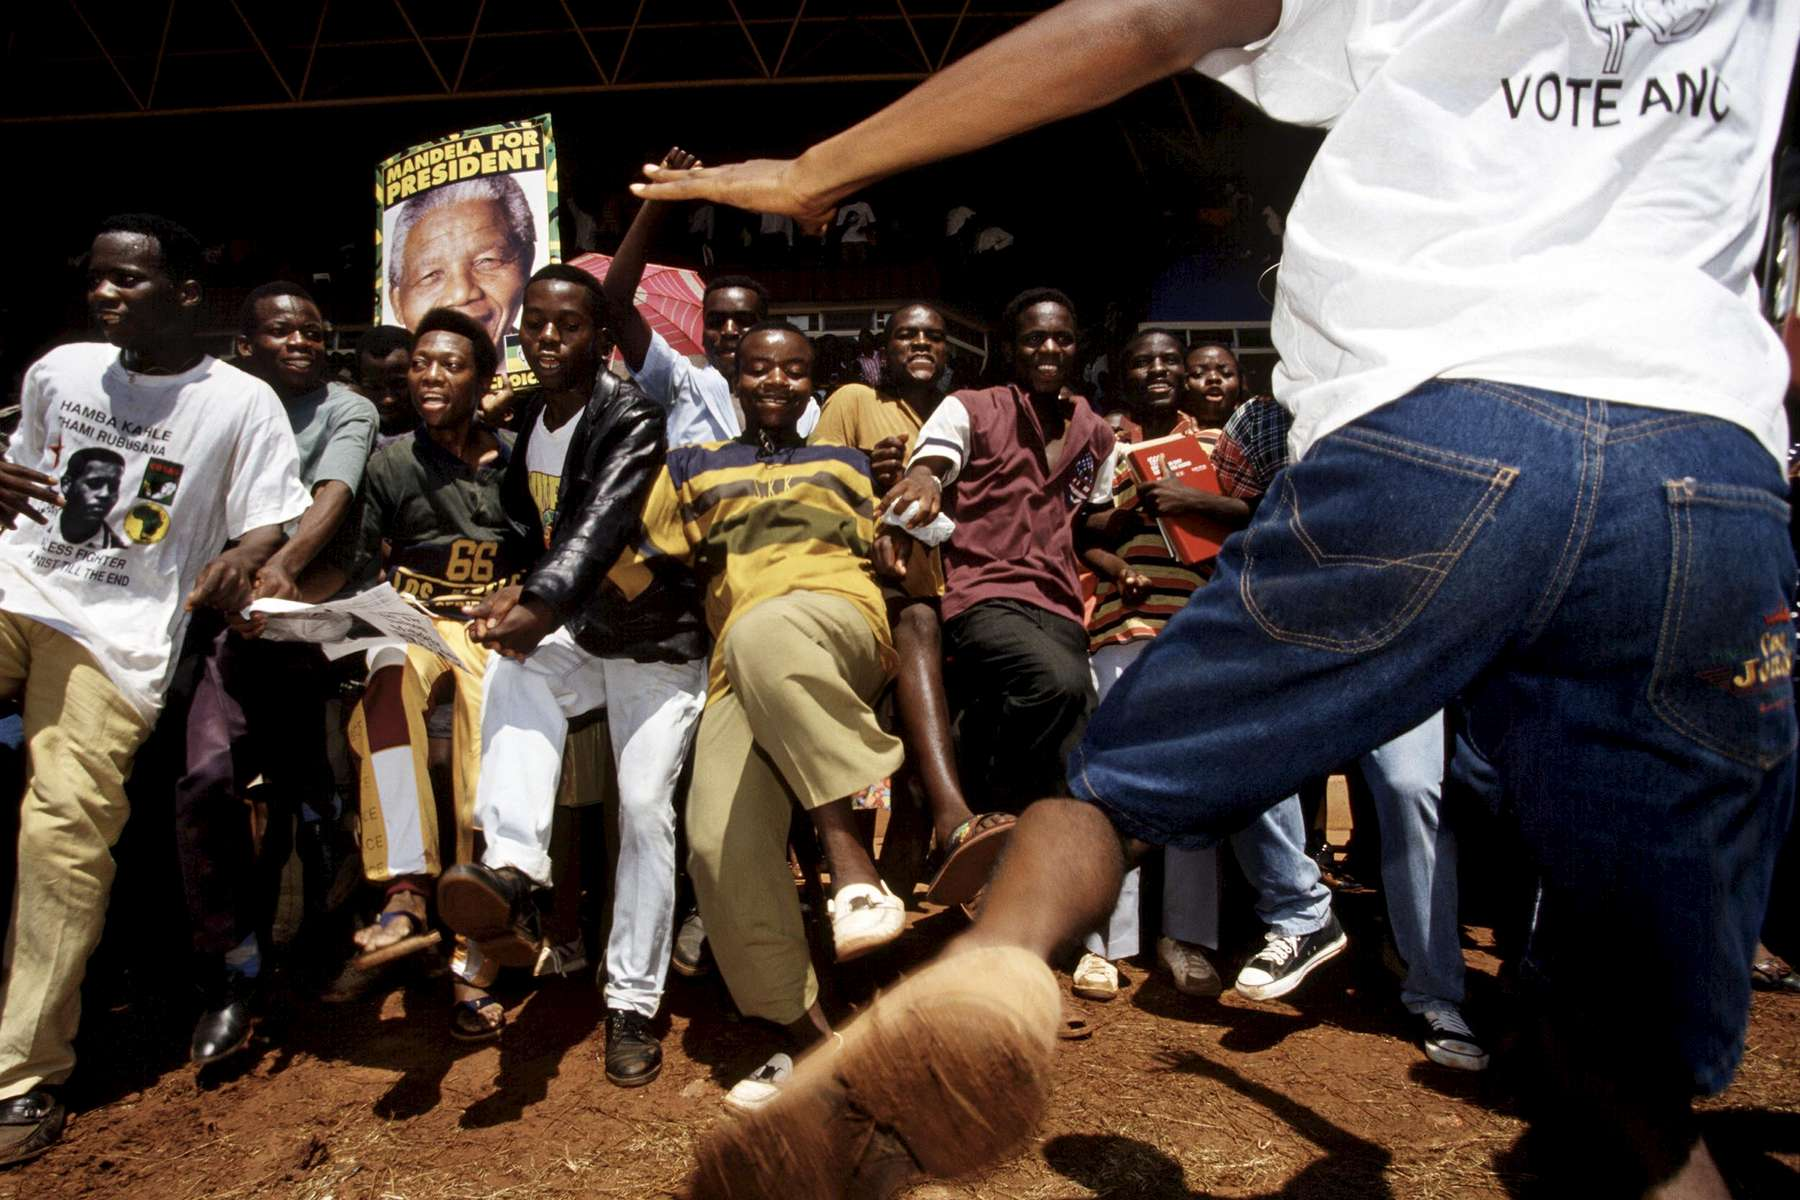 Crowds dance at a Nelson Mandela campaign event.  After more then 27 years in jail as an anti-apartheid activist,   Nelson Mandela lead a 1994 campaign for President as a member of the African National Congress (ANC),  in the first free elections in South Africa in 1994.  Mandela has received more than 250 awards over four decades, including the 1993 Nobel Peace Prize.